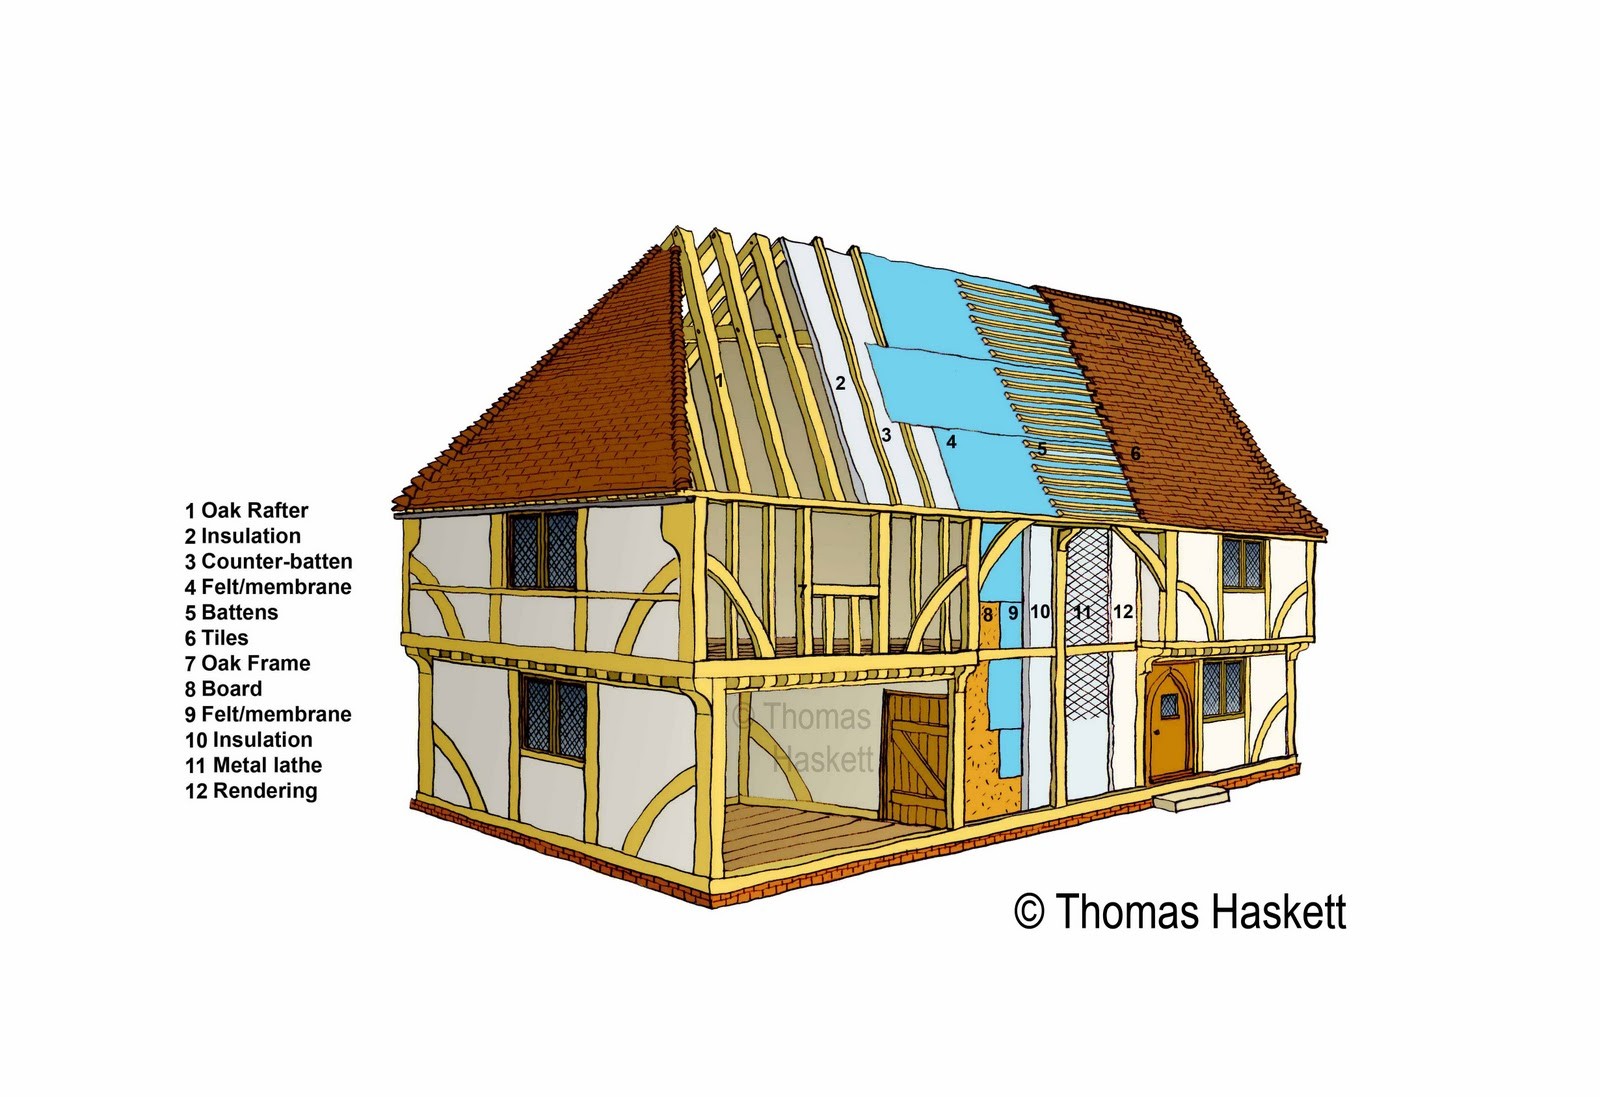 House of timber 8 by 8 - construction features, layout and reviews 93